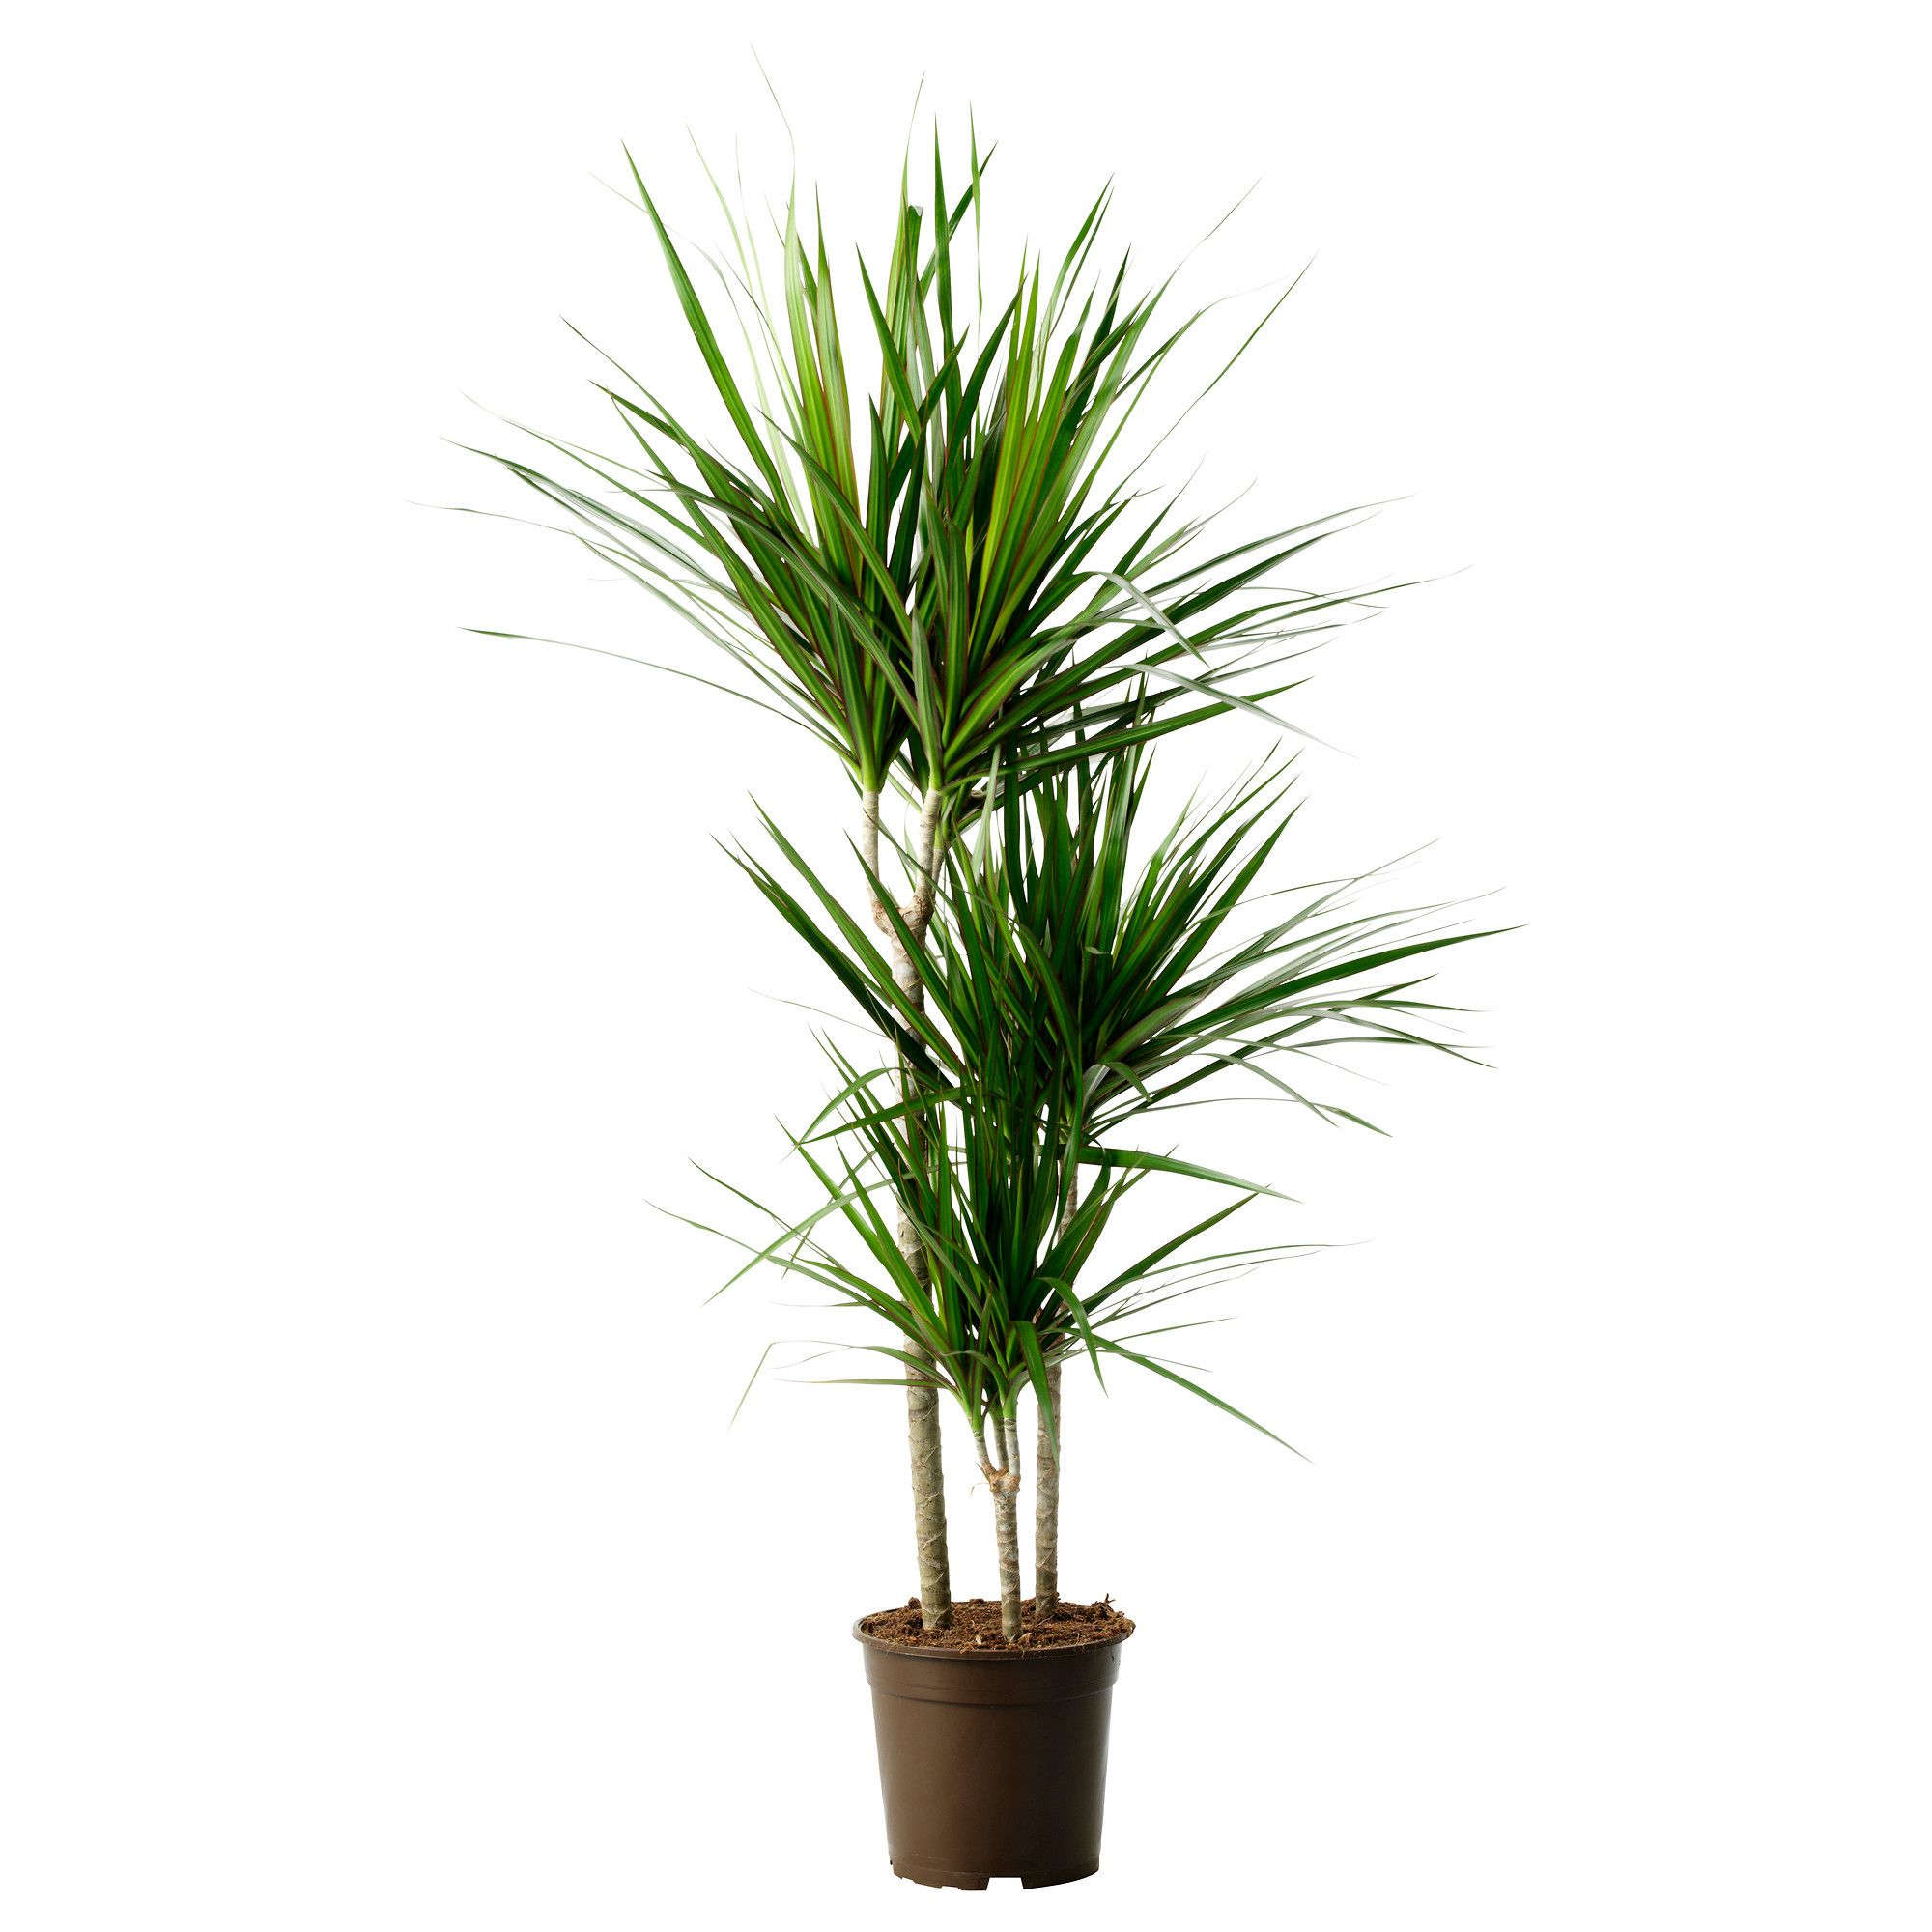 Large Indoor House Plants For Sale Plante Verte Ikea Wish List Appartement En 2018